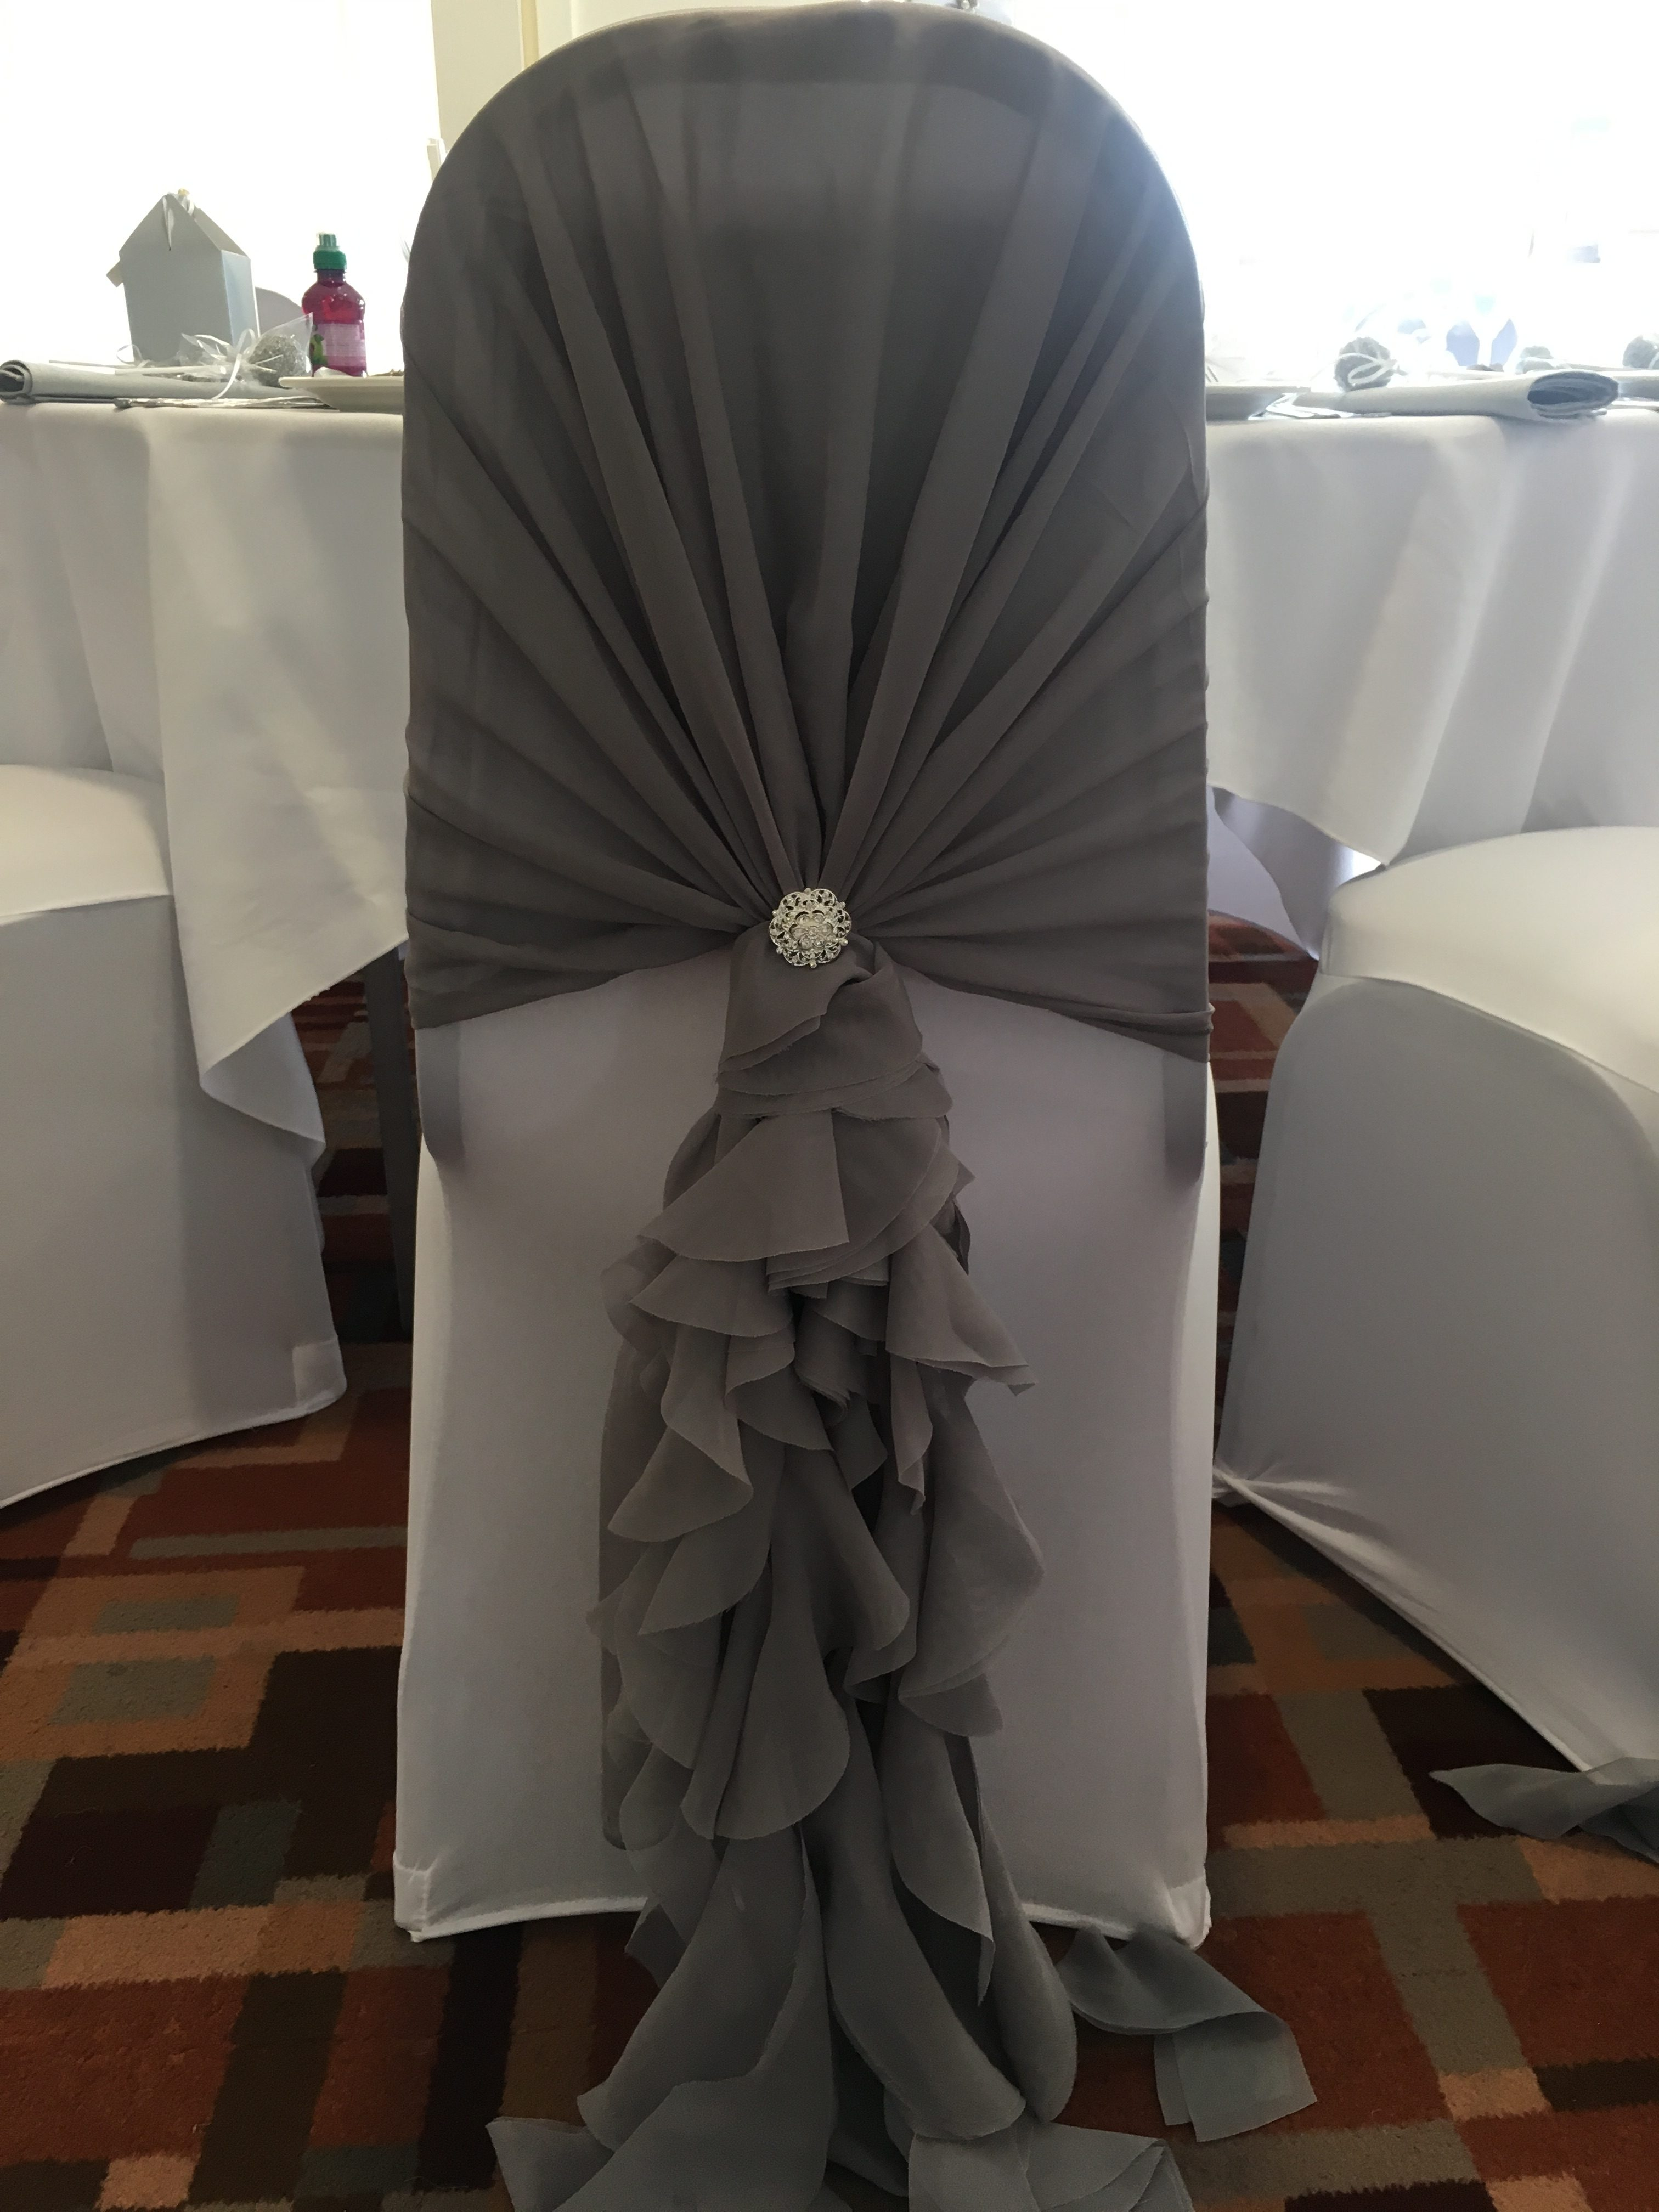 Dark Silver Ruffle Hoods with Silver Brooch - Thornhurst Manor Sophia's Final Touch - Venue Styling - Weddings